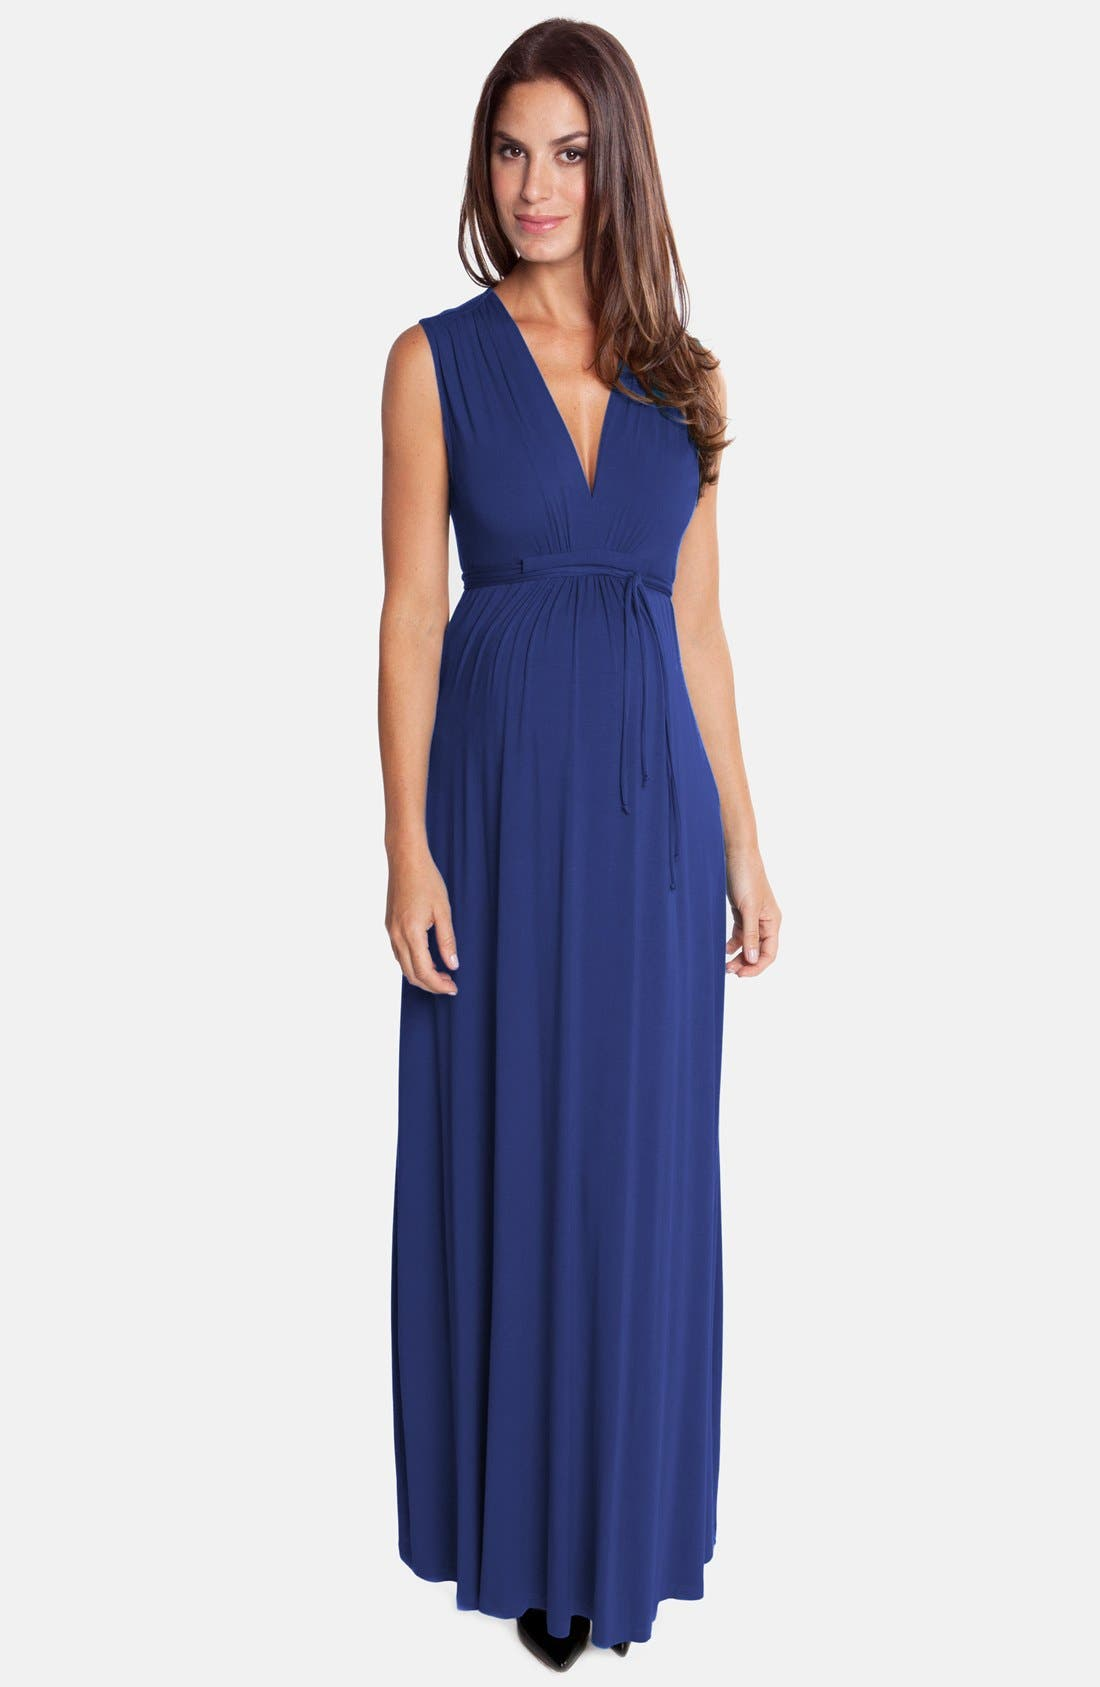 Lucy Maternity Maxi Dress,                         Main,                         color, TRUE BLUE